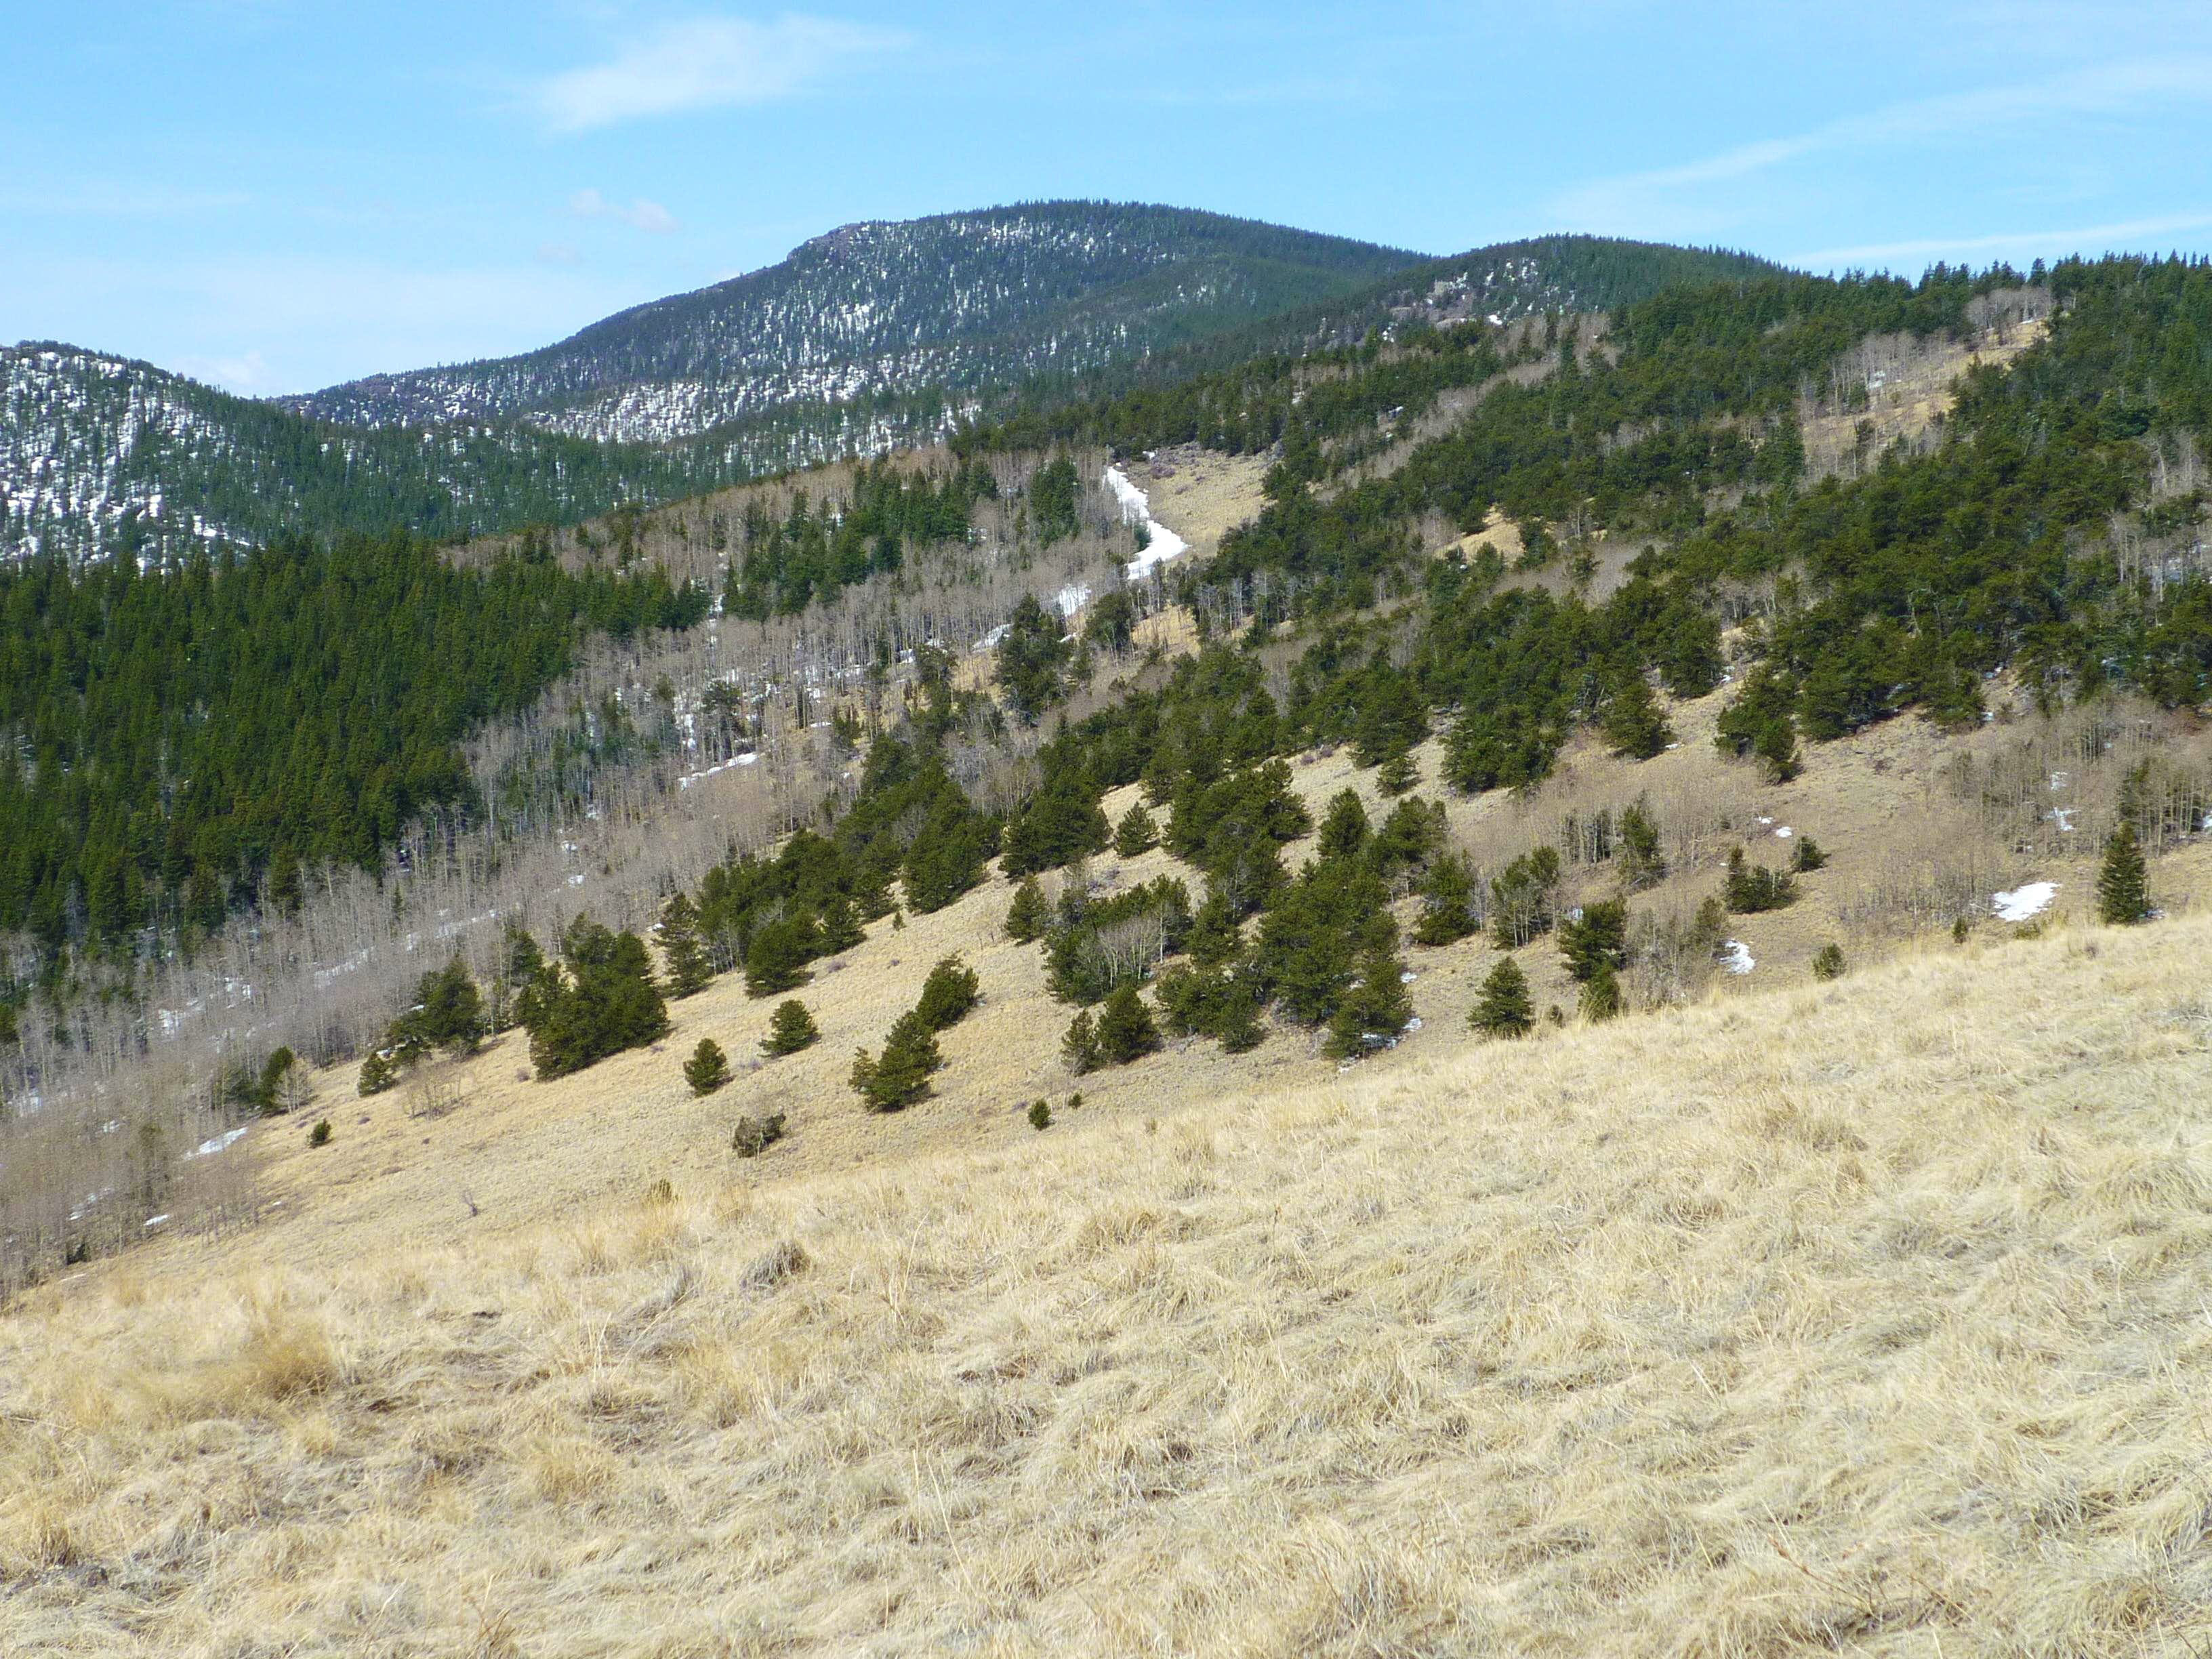 Thirtynine Mile Mountain